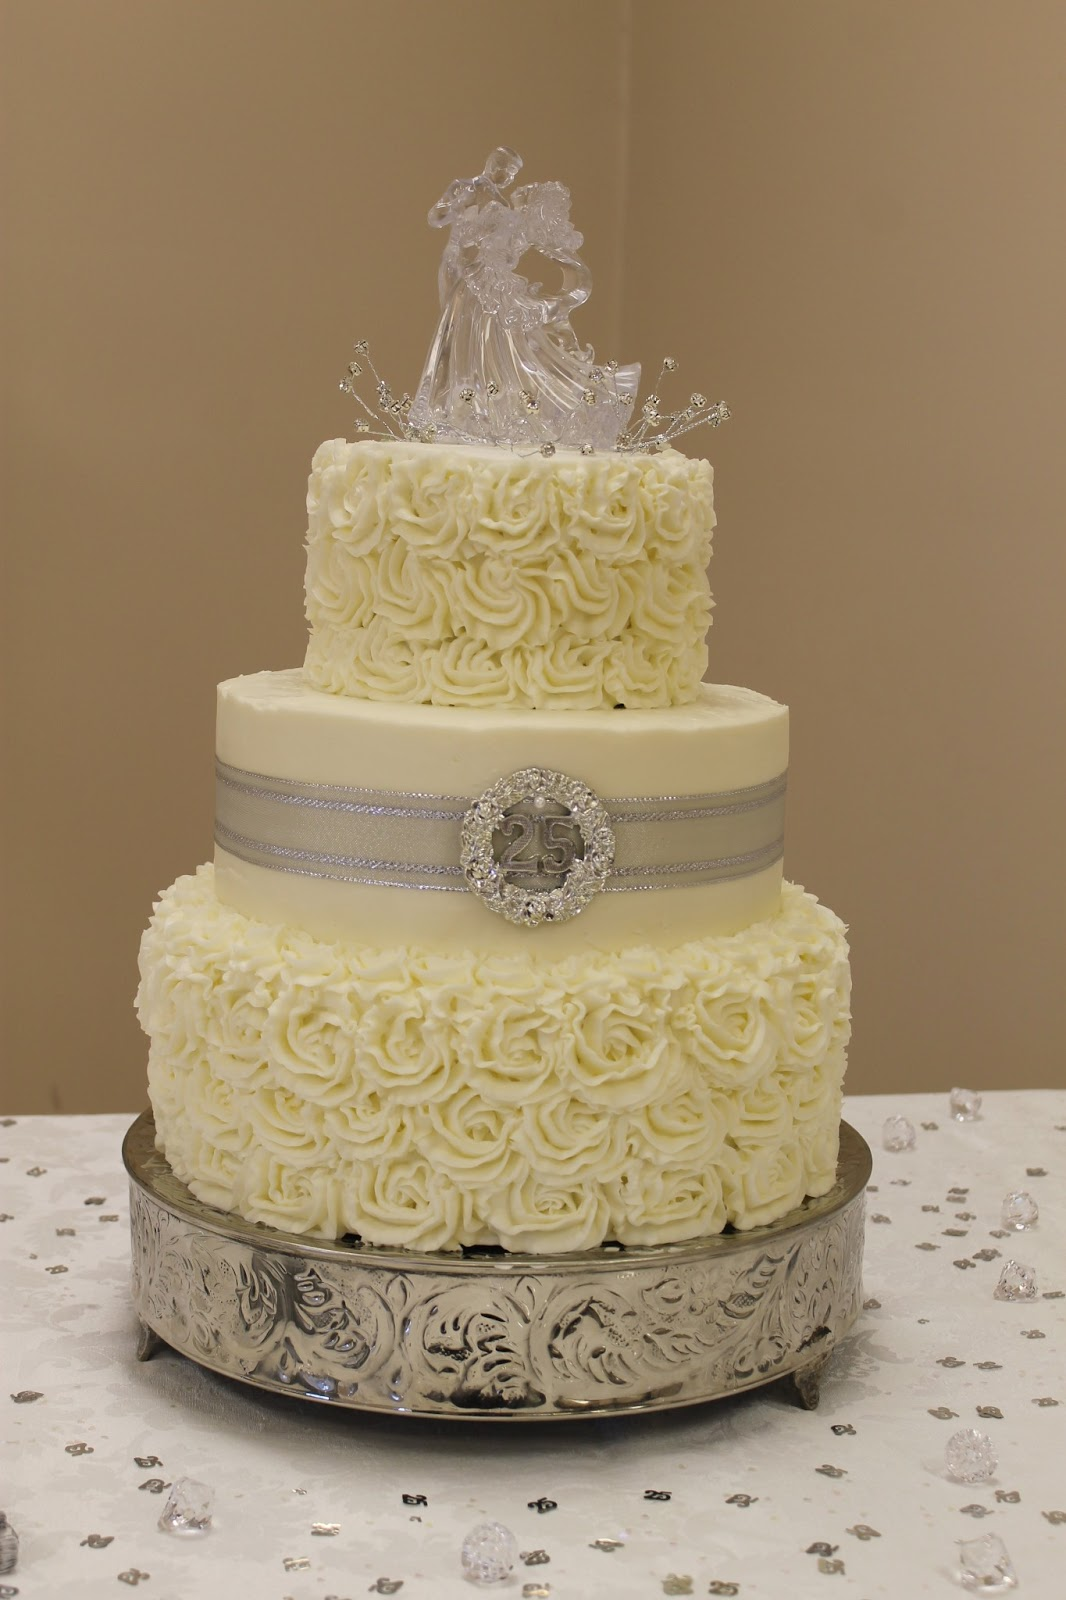 The Simple Cake: Silver Wedding Anniversary Cake